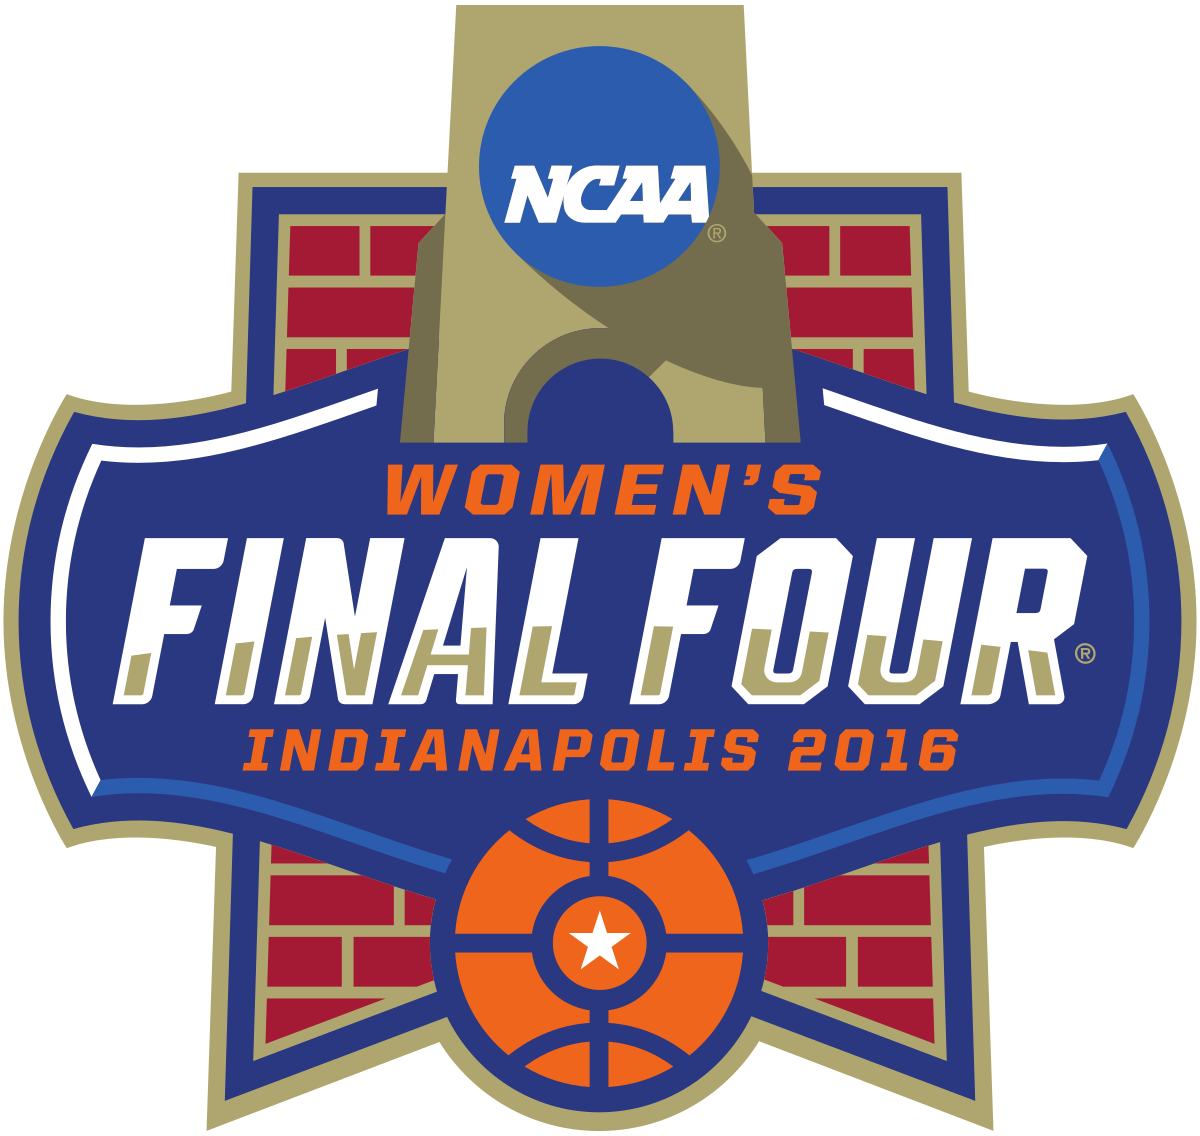 Basketball champions logo clipart clip transparent 2016 NCAA Division I Women's Basketball Tournament - Wikipedia clip transparent